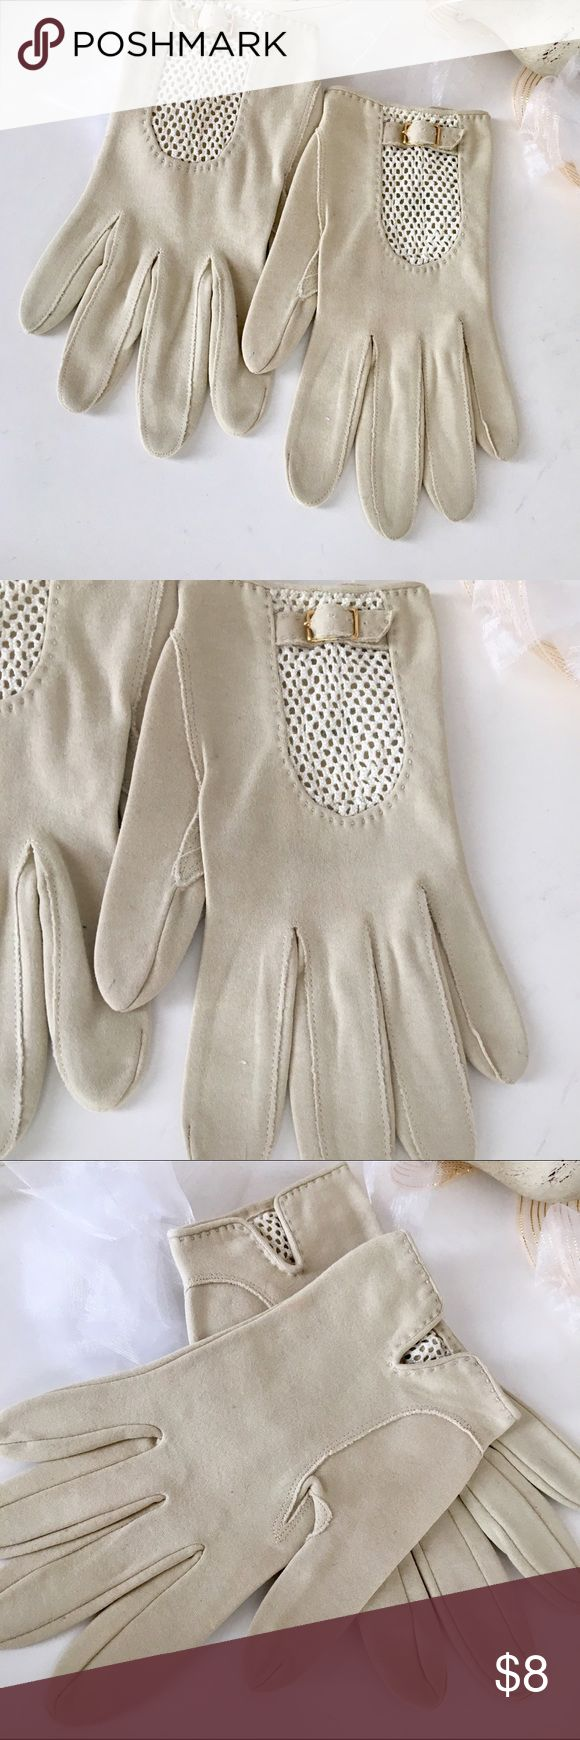 Vintage Cream Gloves💐 These are DEFINITELY VINTAGE. CAME IN LARGE LOT OF ACCESSORIES from an estate sale in the Midwest. They are likely a LG/7-8. Hate to say NWTS, though local Department Store tags were still attached (circa 1950s, $11.99😊) I wear size 7/8/9 rings, so for a larger hand. Can take seriously or use in a campy style; I love. Absolutely Pristine; Hardware is still perfect. No stains, stitching is solid. Also have in White; Equally Fine. Enjoy 💚💗 Vintage Accessories Gloves…